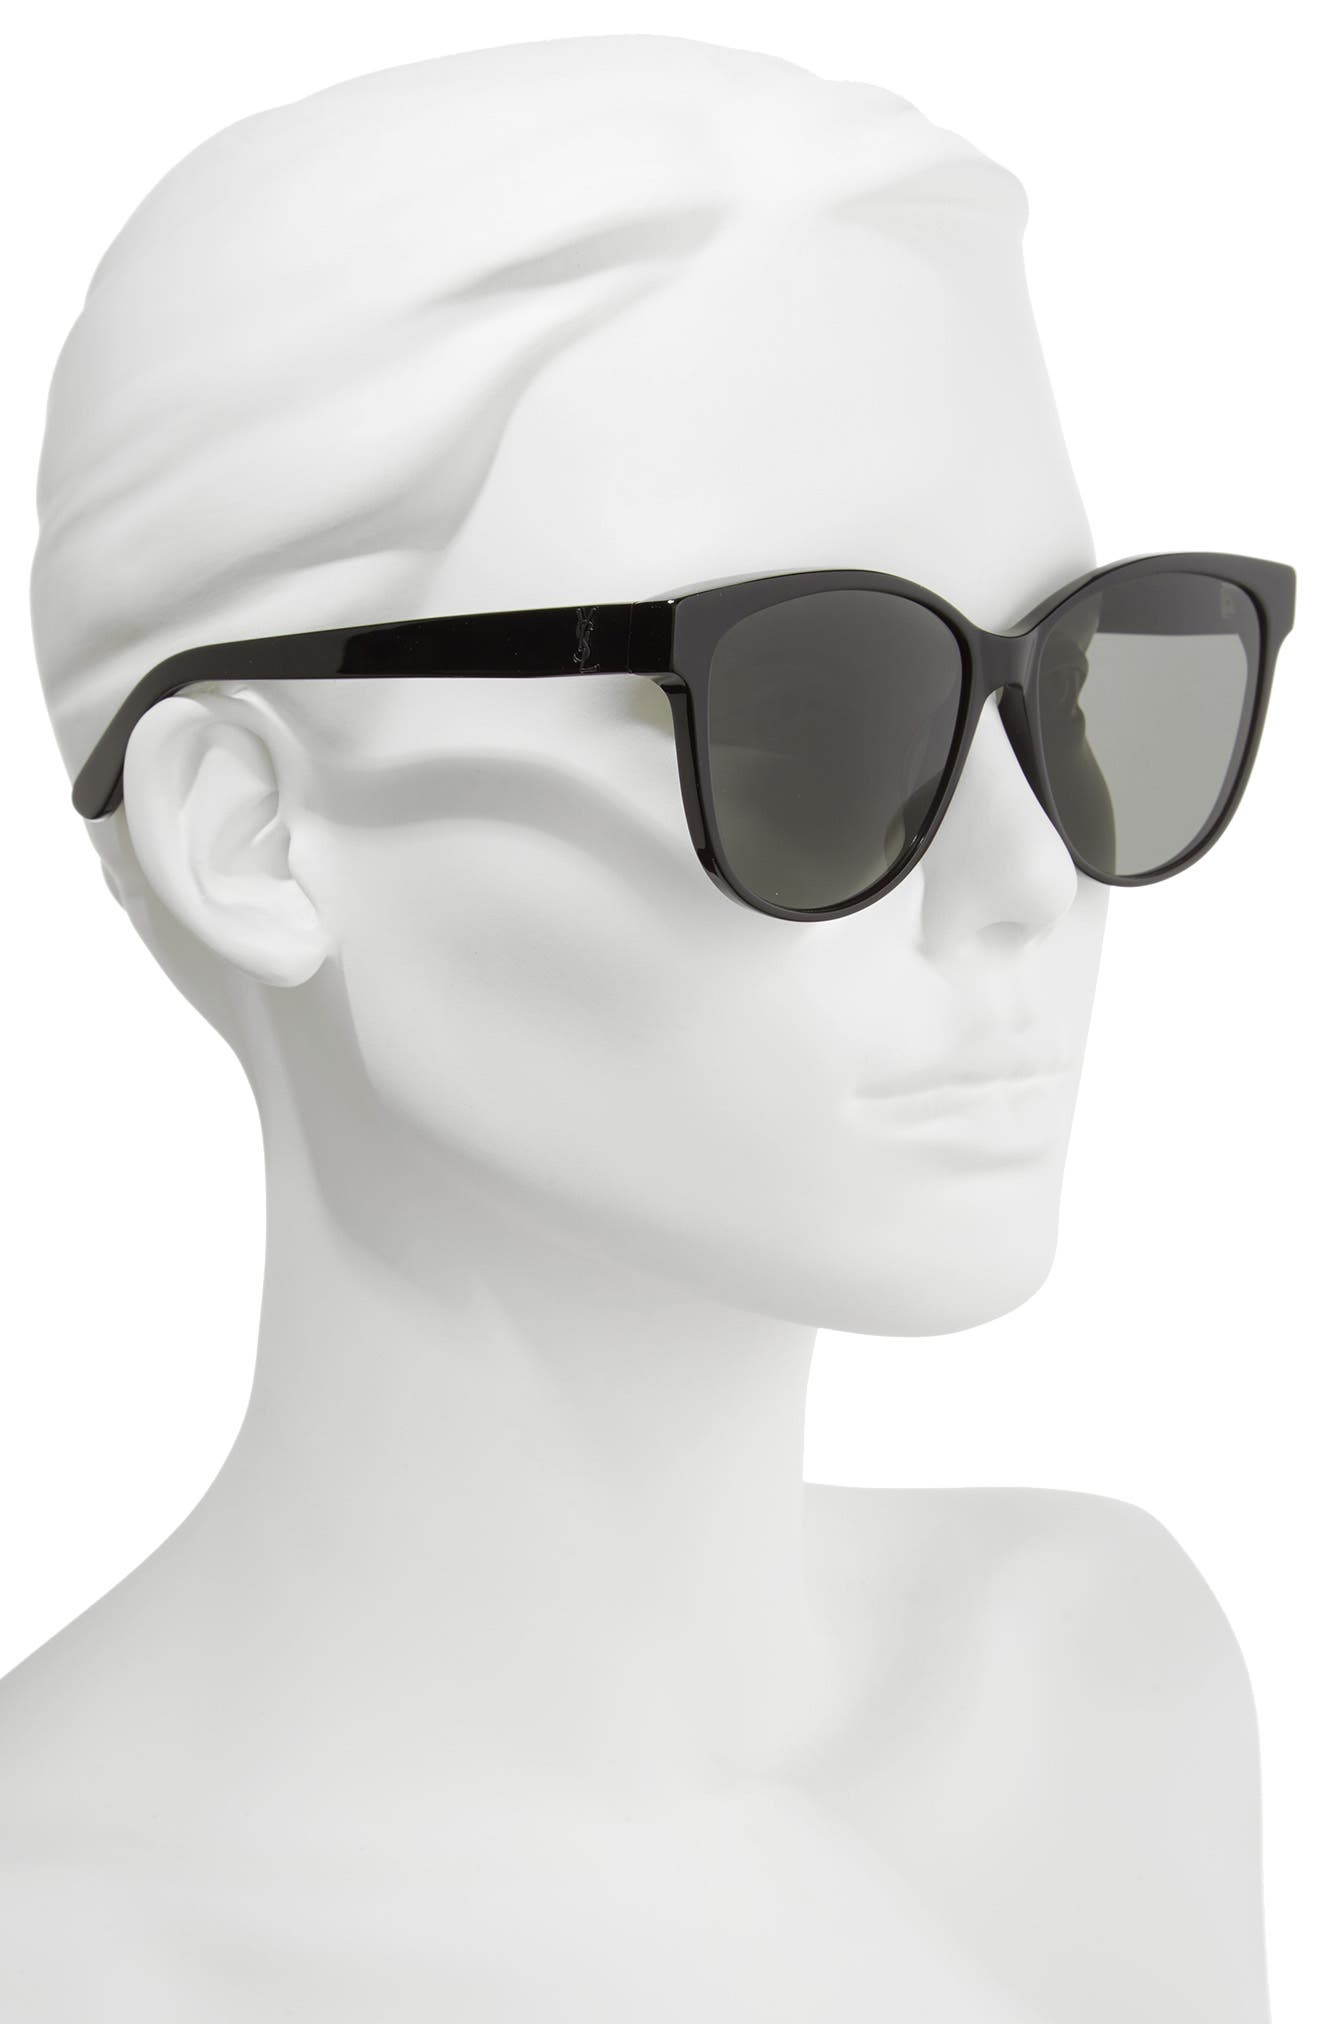 58mm Cat Eye Sunglasses,                             Alternate thumbnail 2, color,                             BLACK